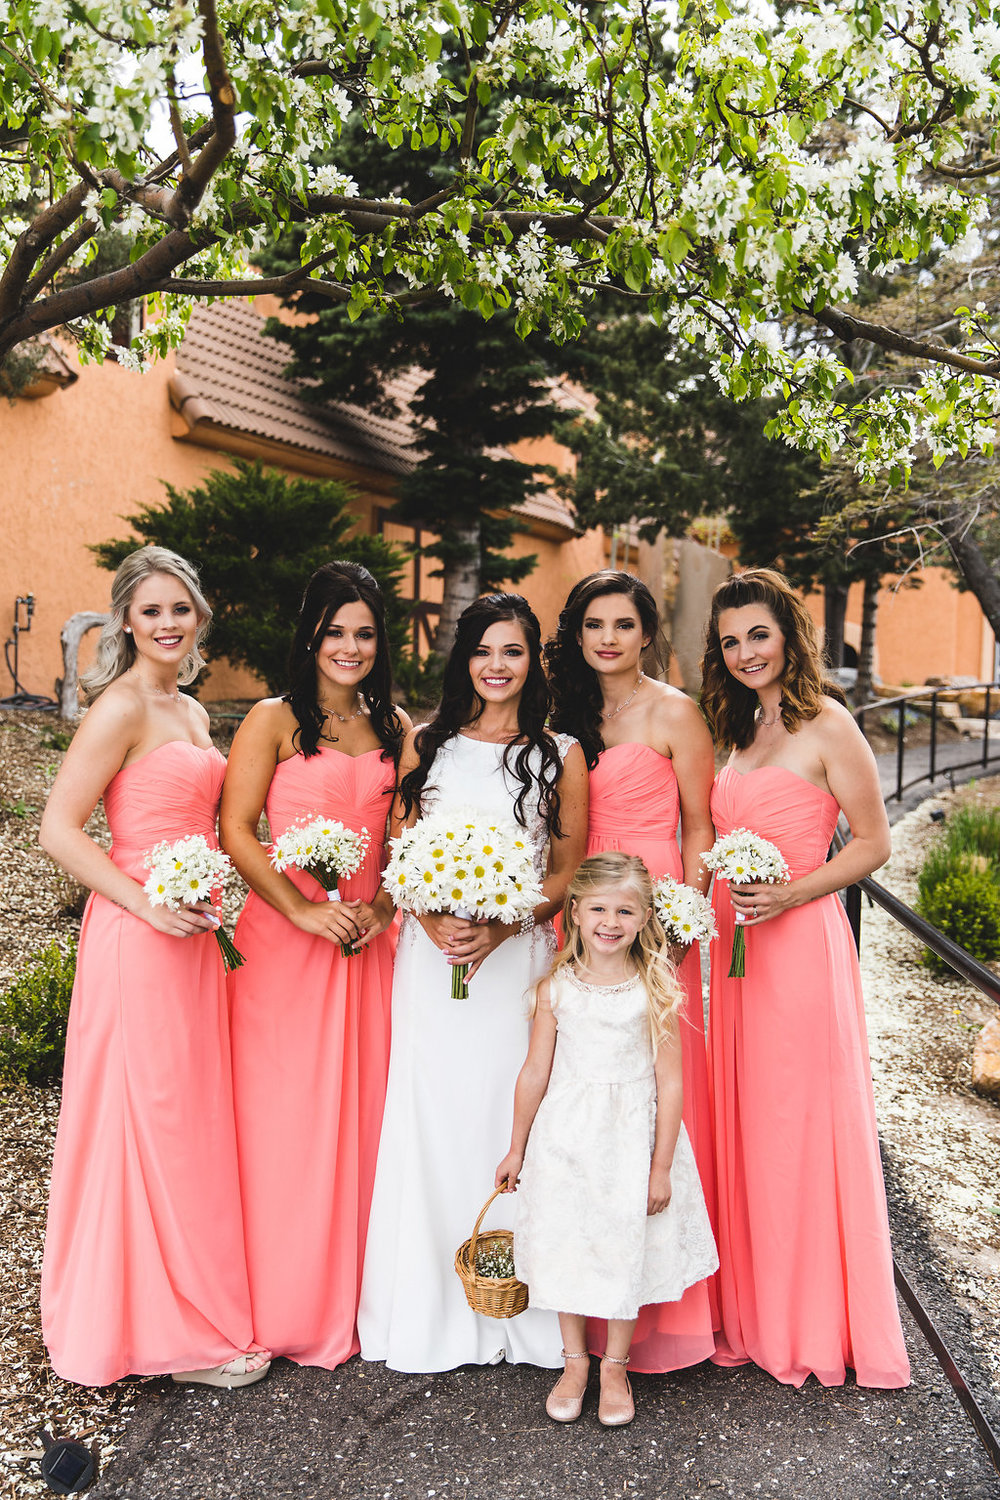 Wedgewood Weddings Brittany Hill Wedding - Colorado DIY Wedding — The Overwhelmed Bride Wedding Blog